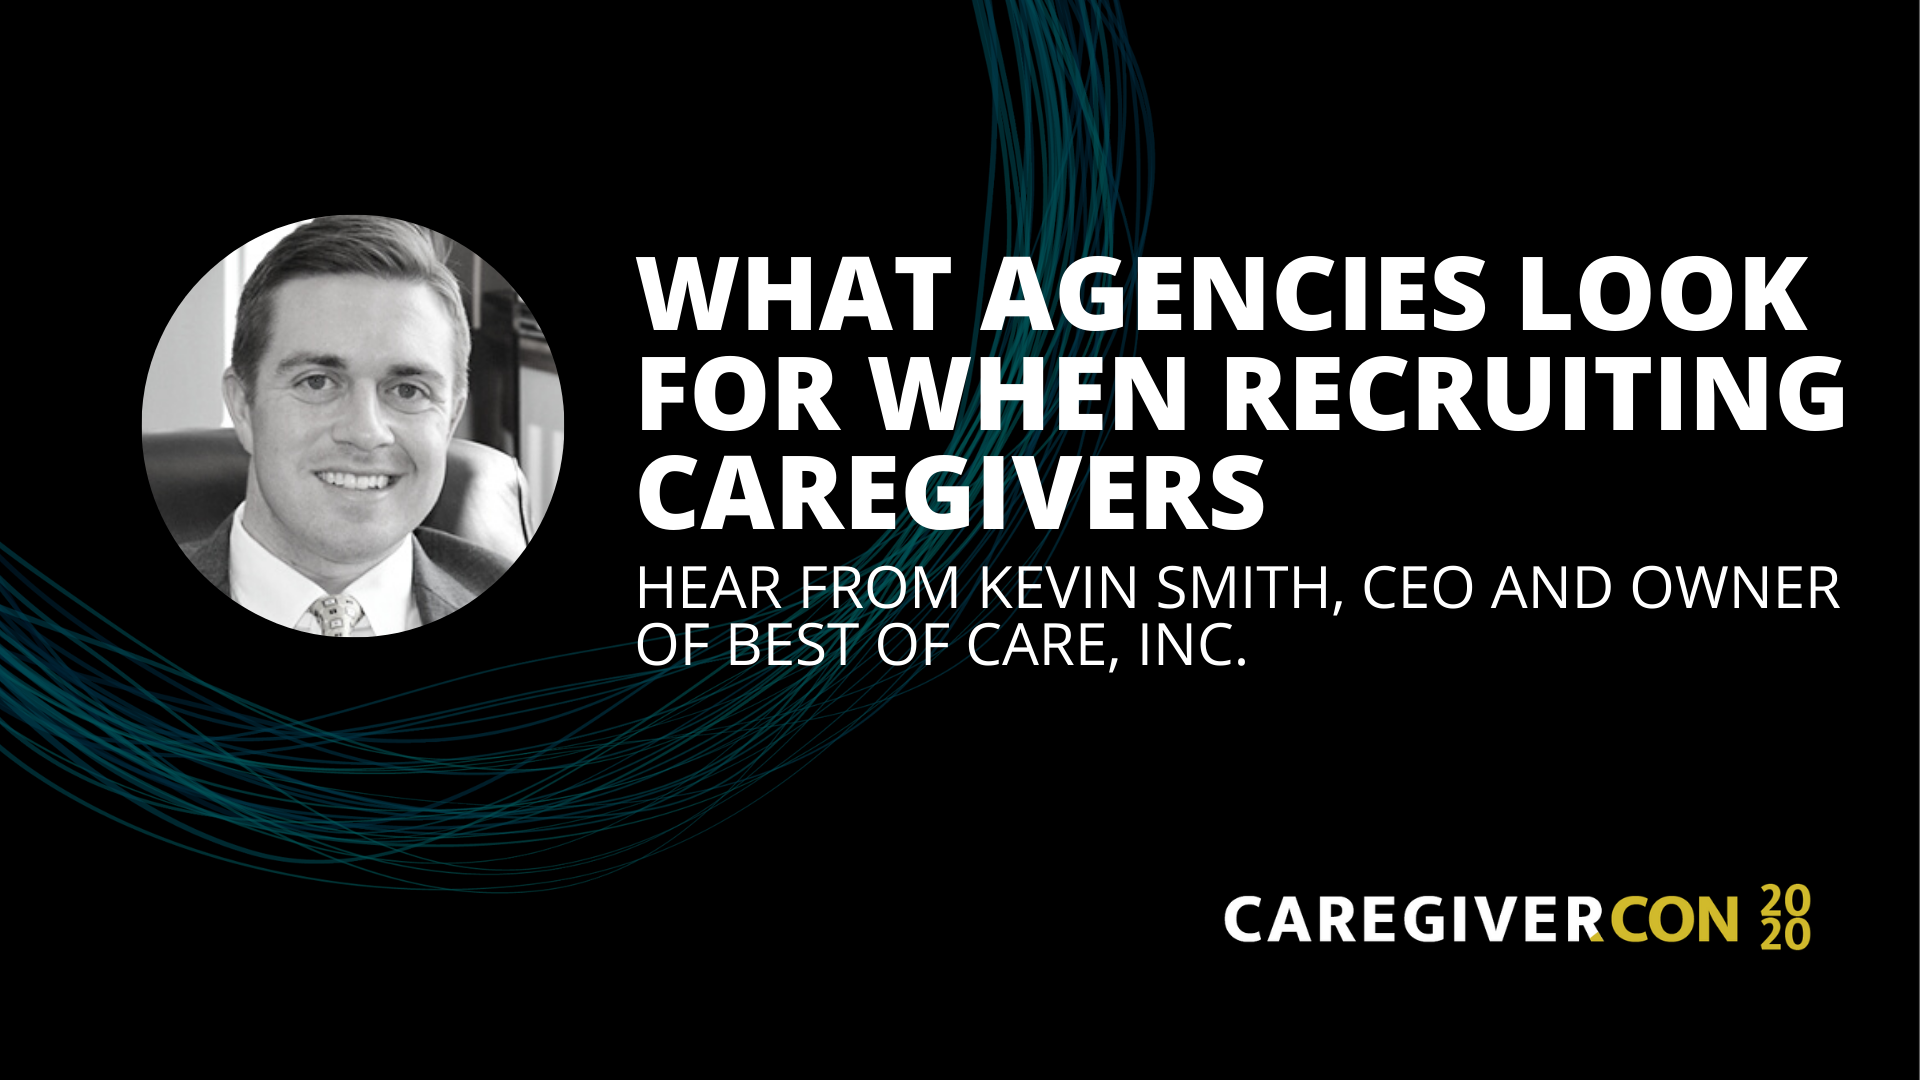 What Agencies Look For When Recruiting Caregivers